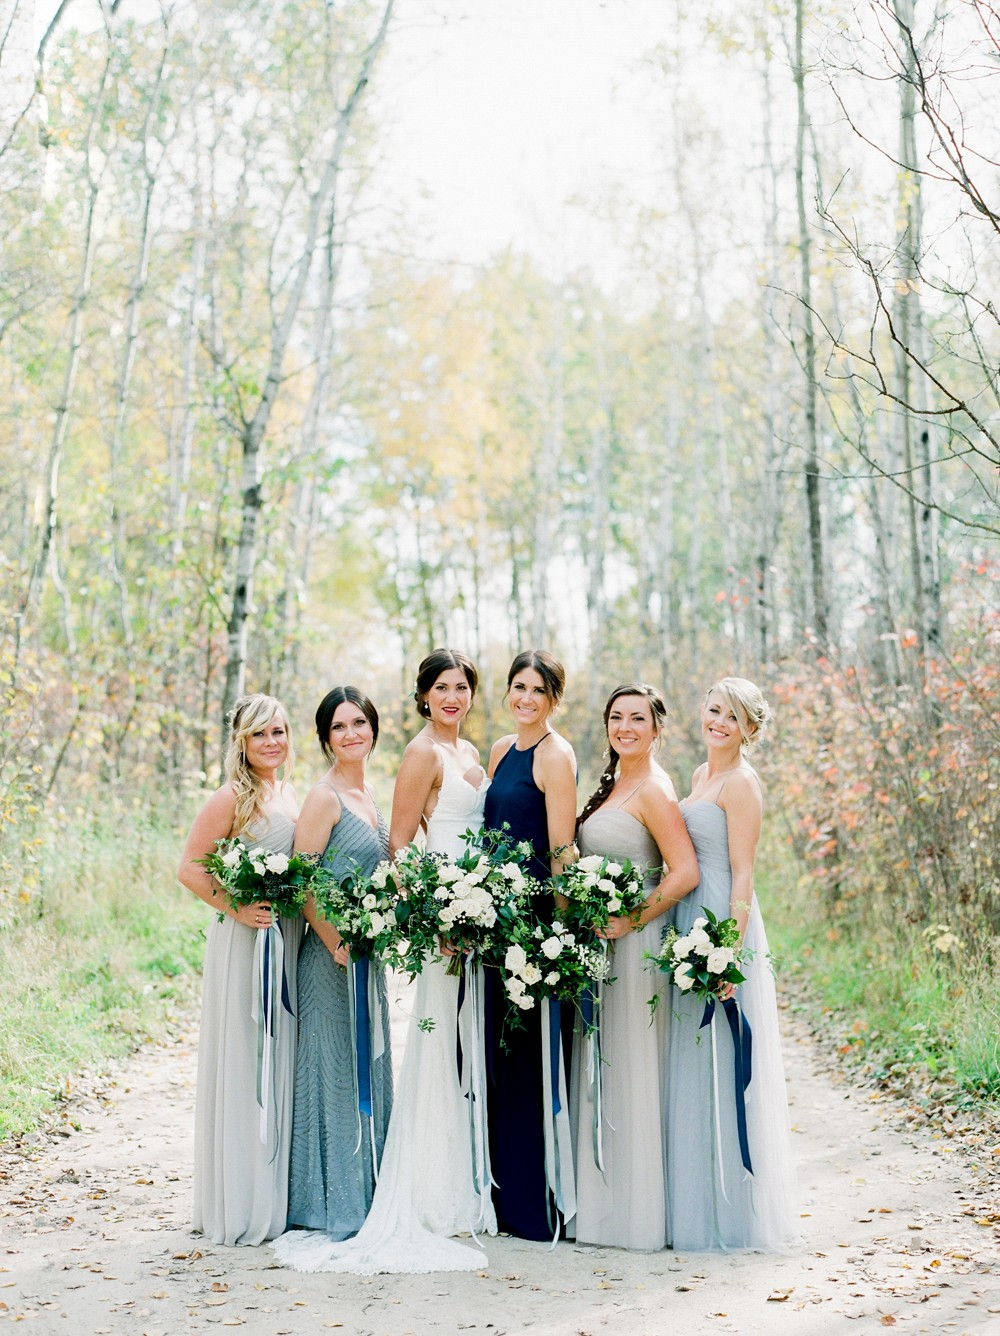 Brittany and Russ' Blue, Grey, and Neutral Wedding